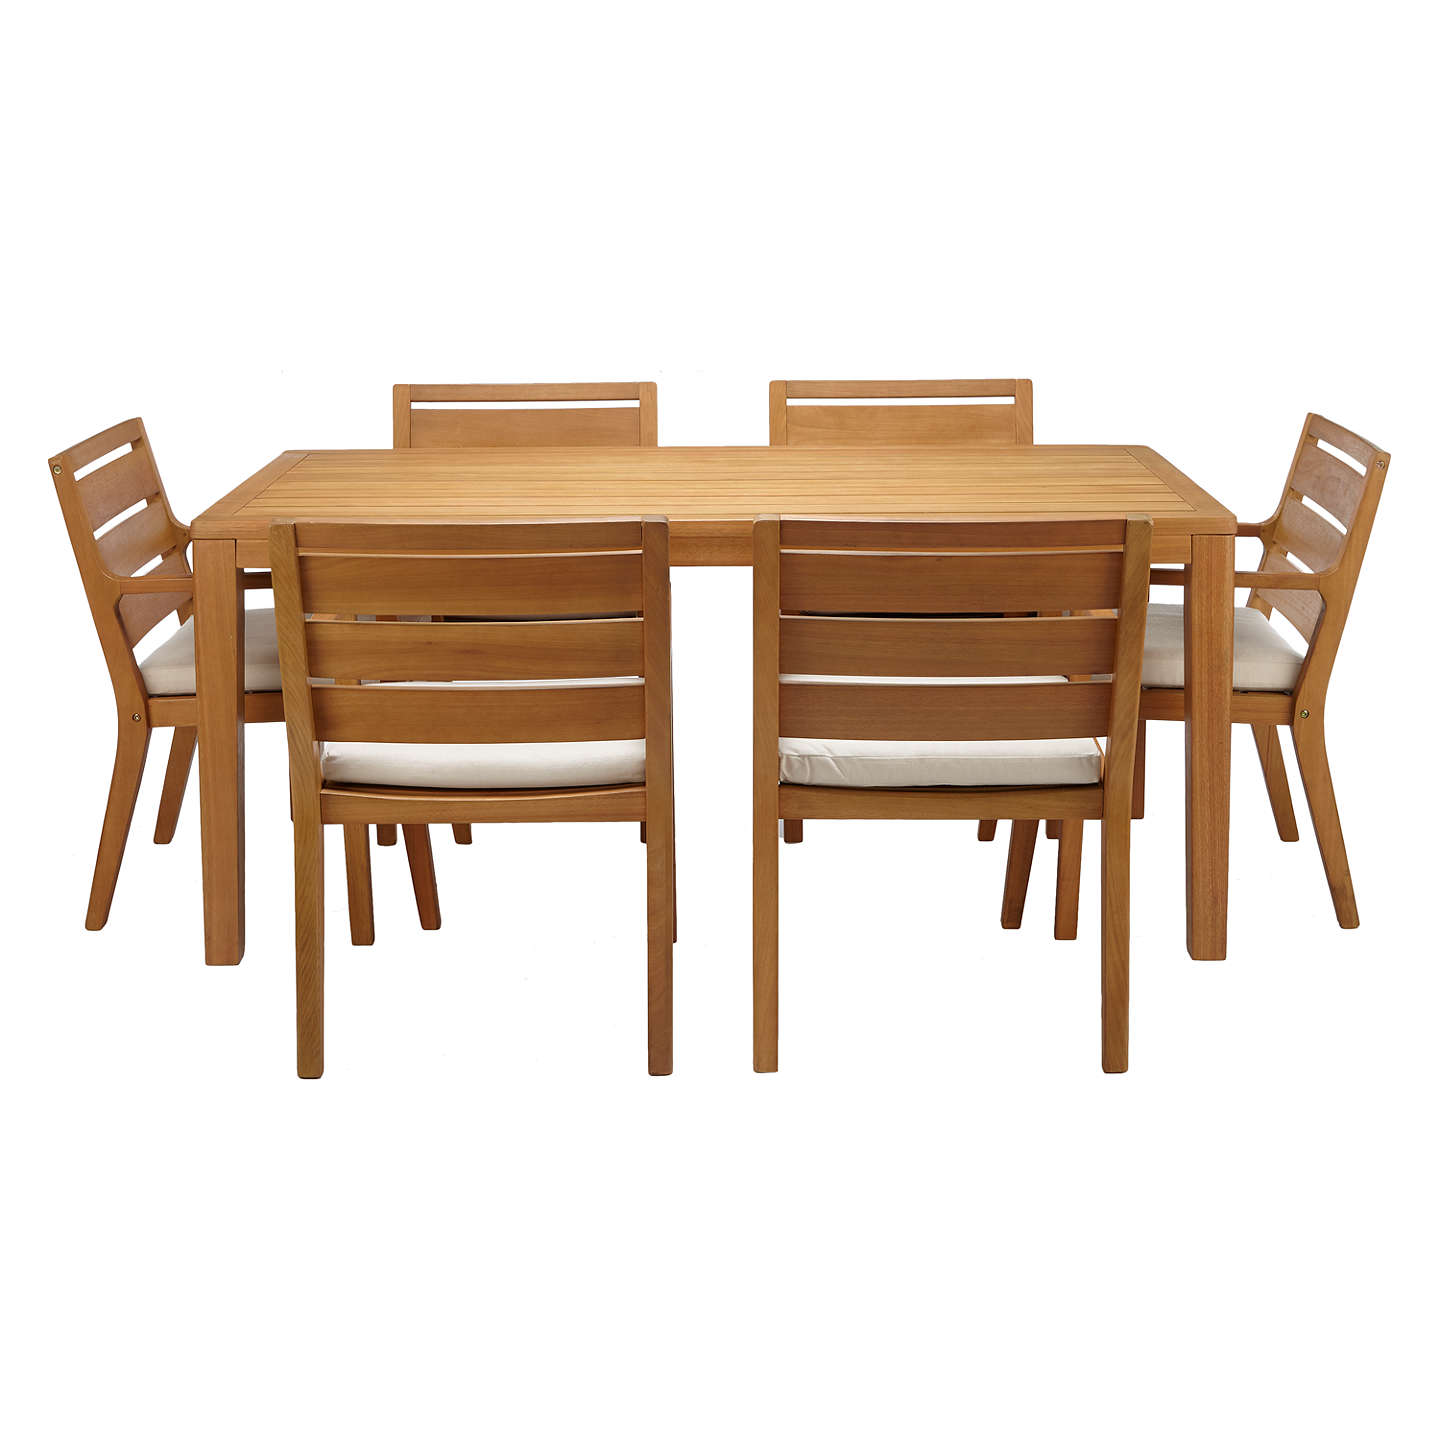 Garden Table And Chairs Set John Lewis: John Lewis Alta 6 Seat Garden Dining Table / Chairs Set